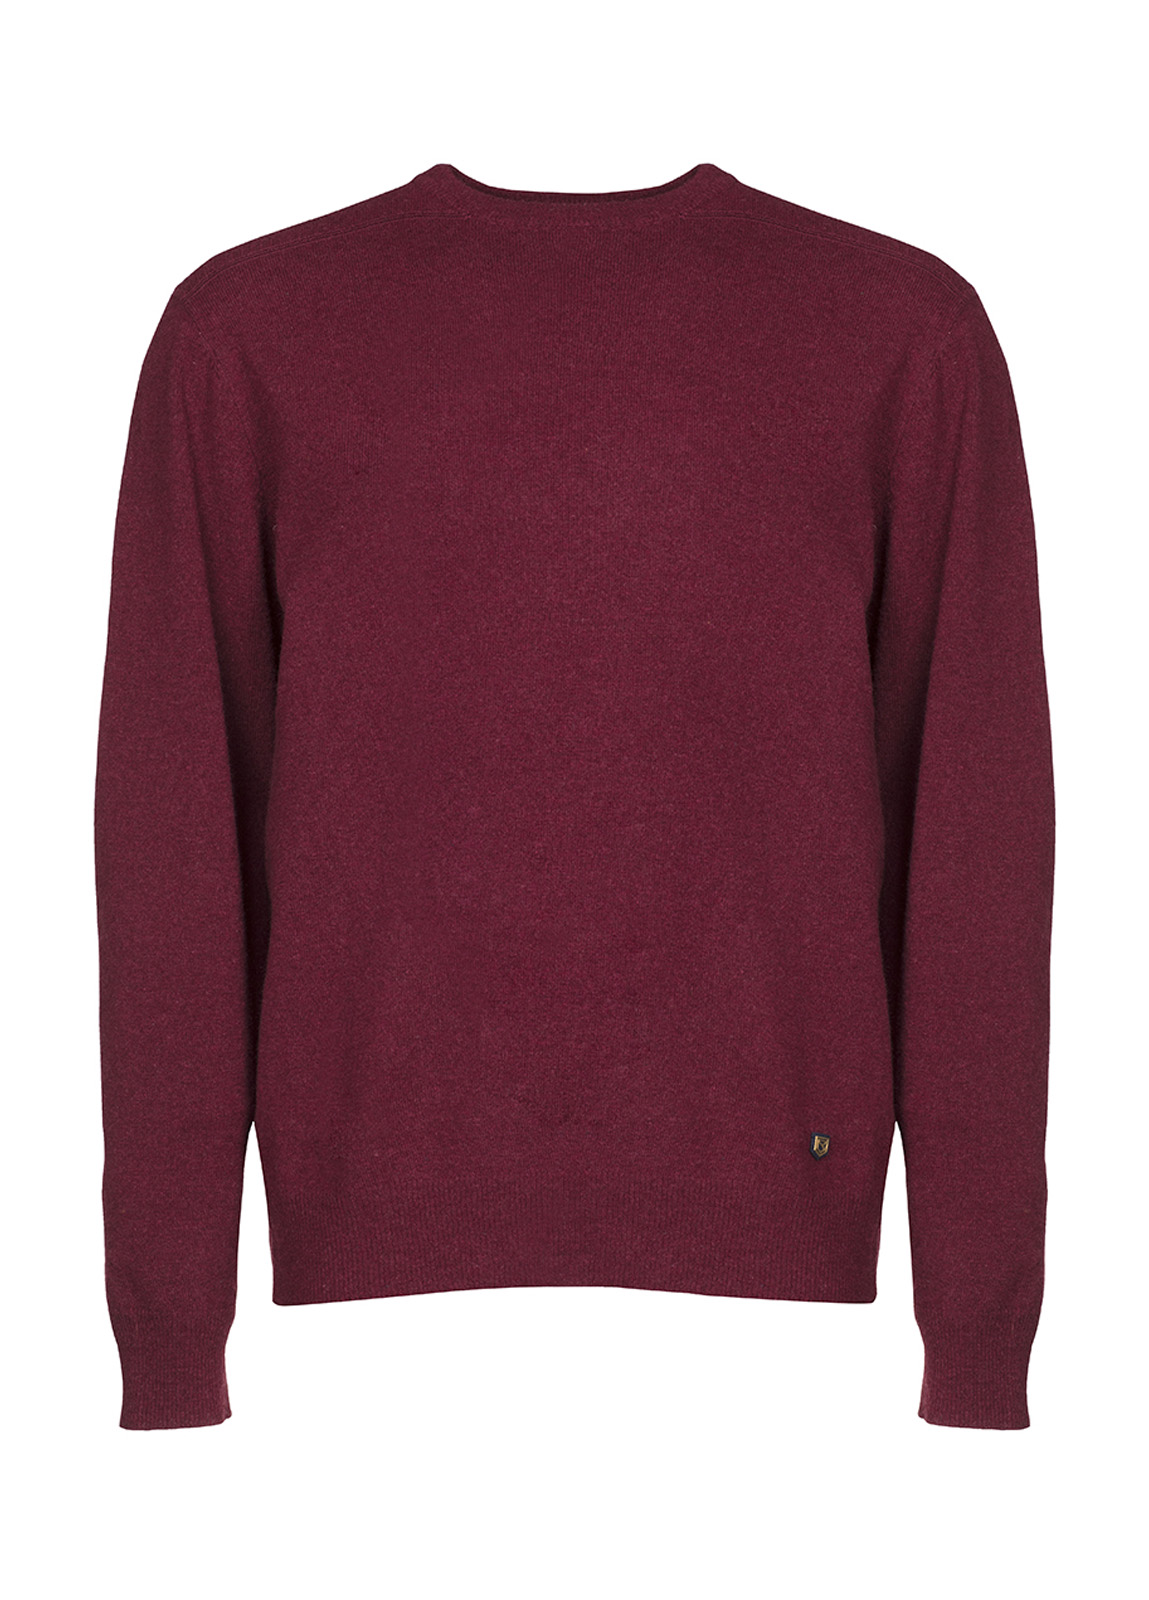 Maguire Men's Sweater - Malbec